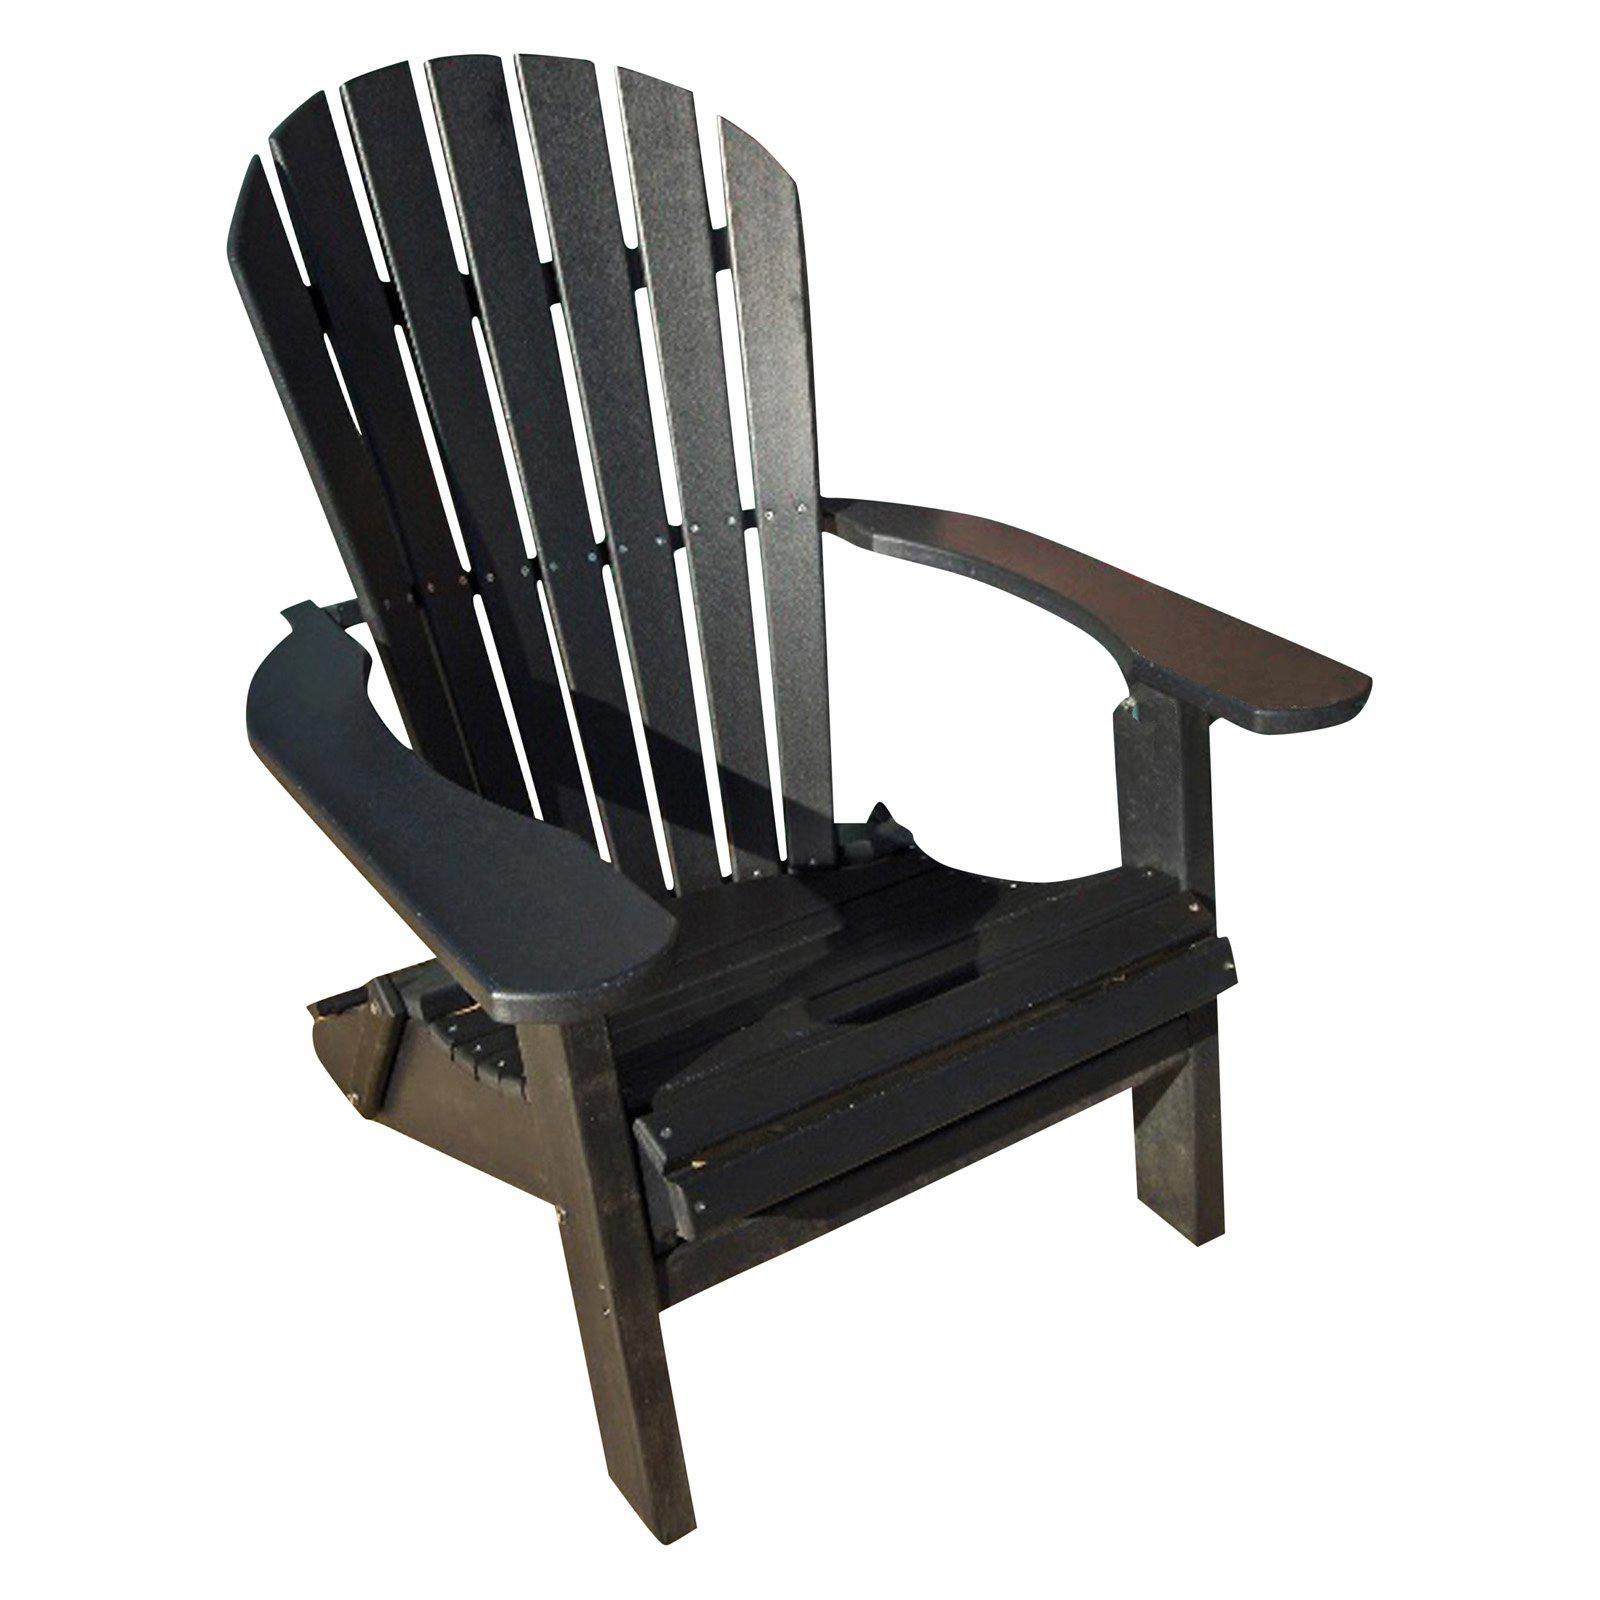 Outdoor Phat Tommy Recycled Plastic Deluxe Folding Adirondack